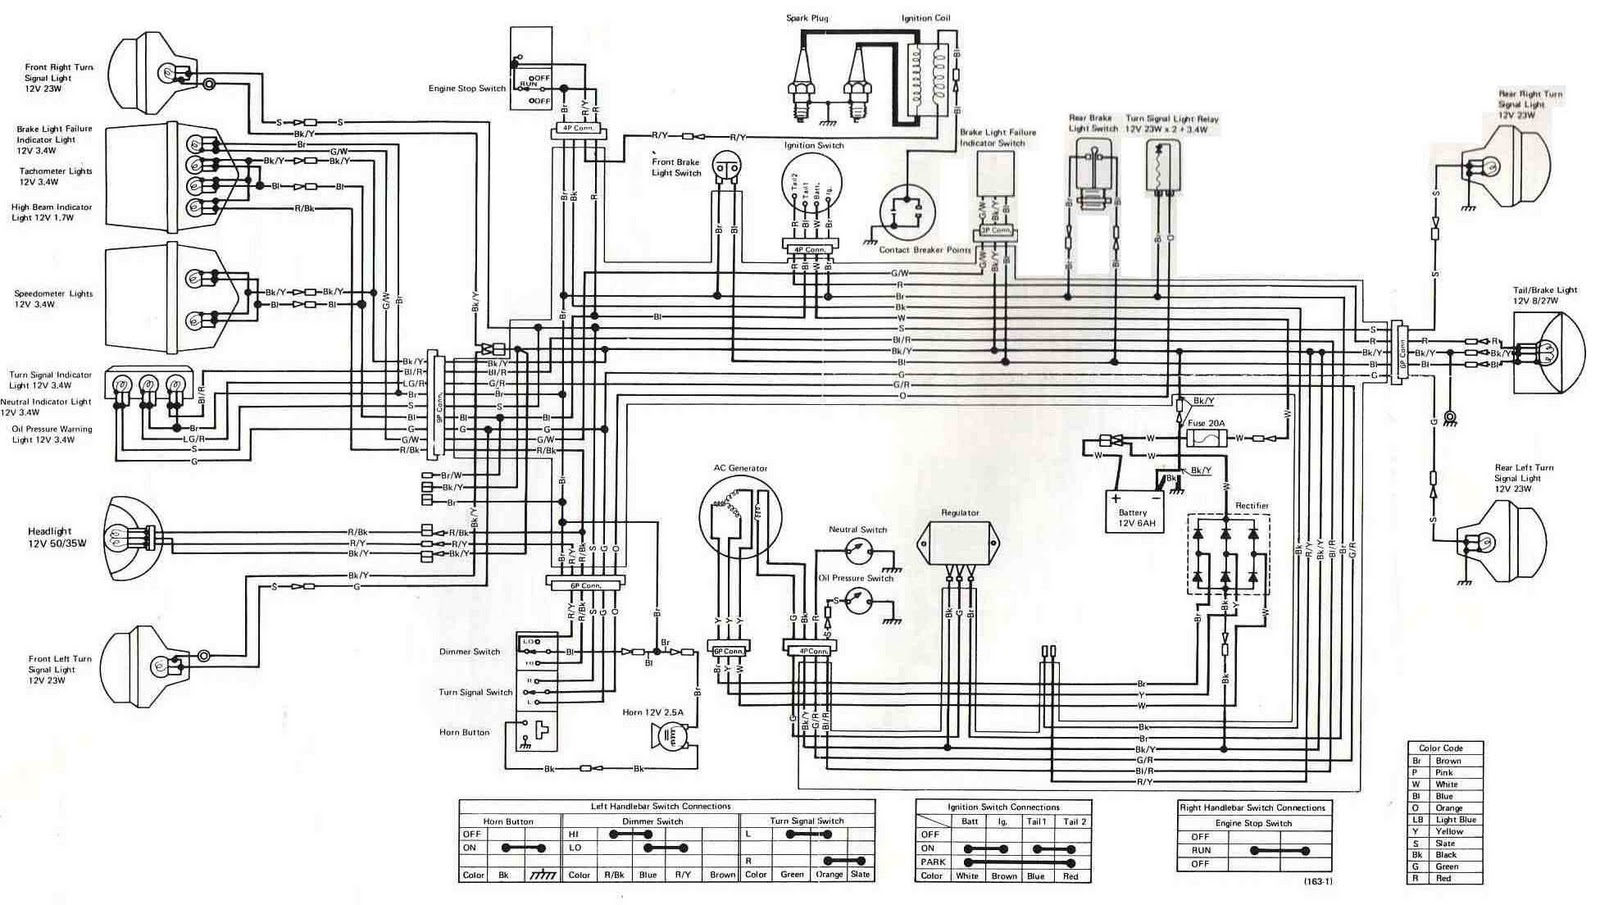 Kawasaki+KZ400+1975+Electrical+Wiring+Diagram kawasaki wiring diagram motorcycle wiring diagrams \u2022 free wiring kawasaki zx9r e1 wiring diagram at readyjetset.co